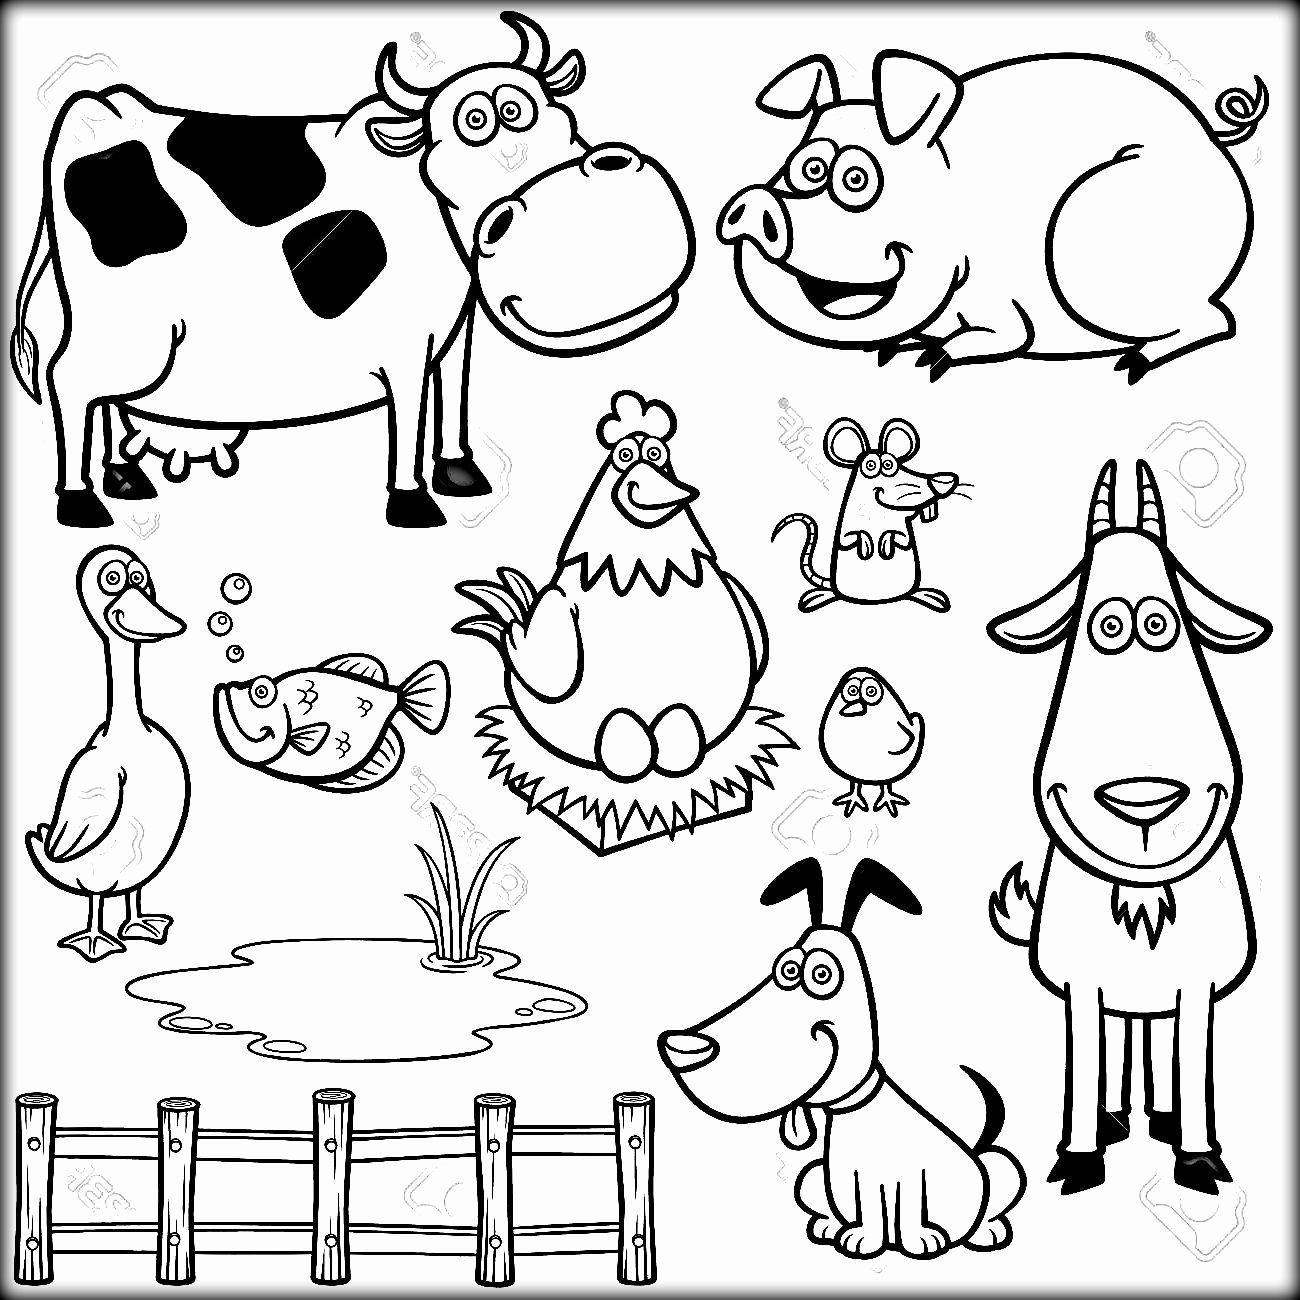 Farm Animals Coloring Page Fresh Free Printable Farm Animal Coloring Pages For Kids Sout In 2020 Farm Animal Coloring Pages Animal Coloring Pages Farm Coloring Pages